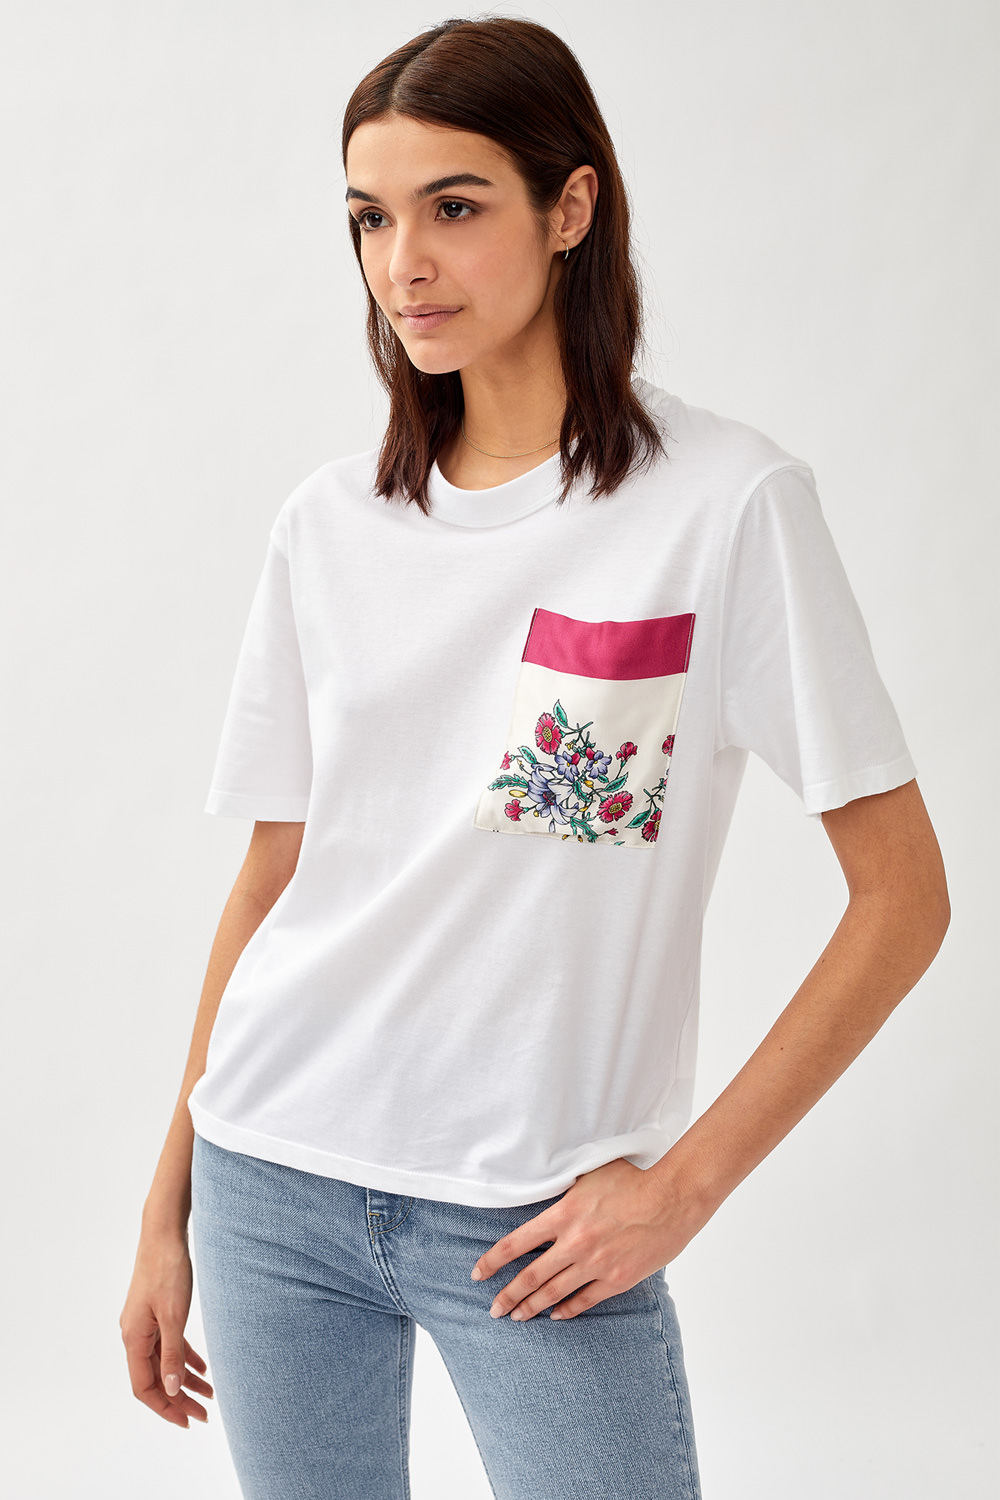 ROY ROGERS: T-SHIRT RE-ISSUE IN JERSEY CON TASCA FOULARD